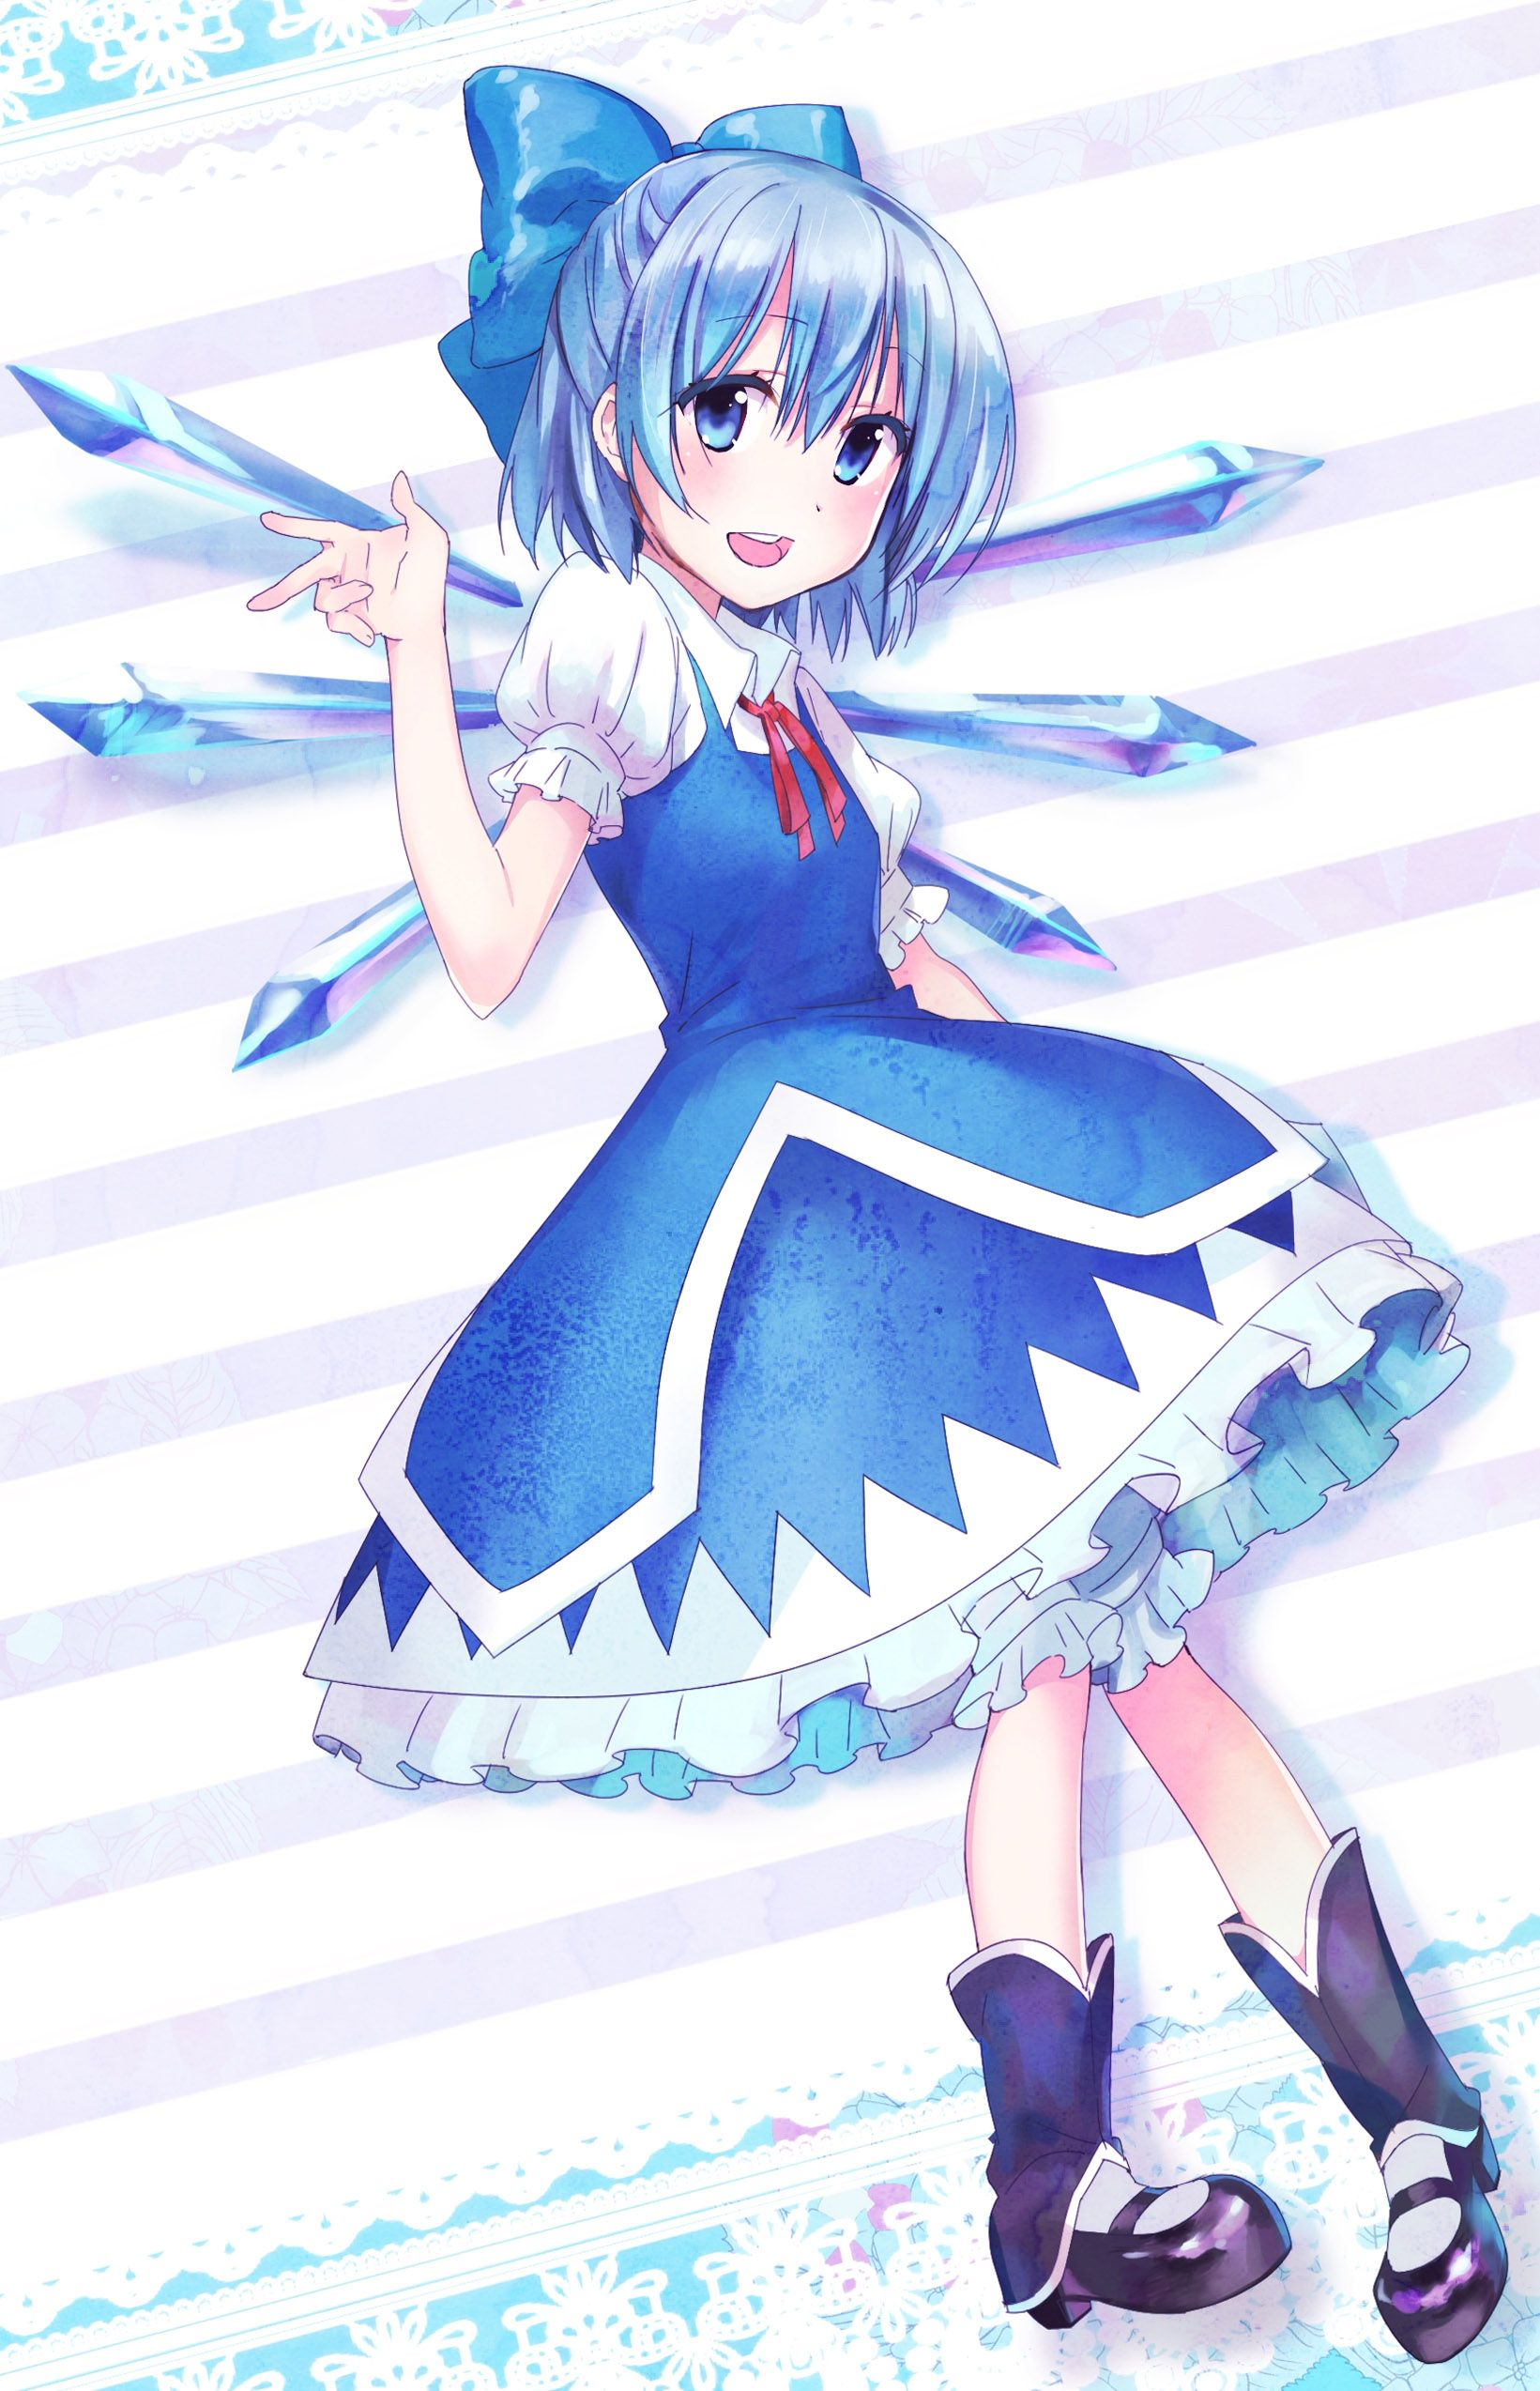 Pin by Phoenixwing on Cirno Touhou Project (東方Project